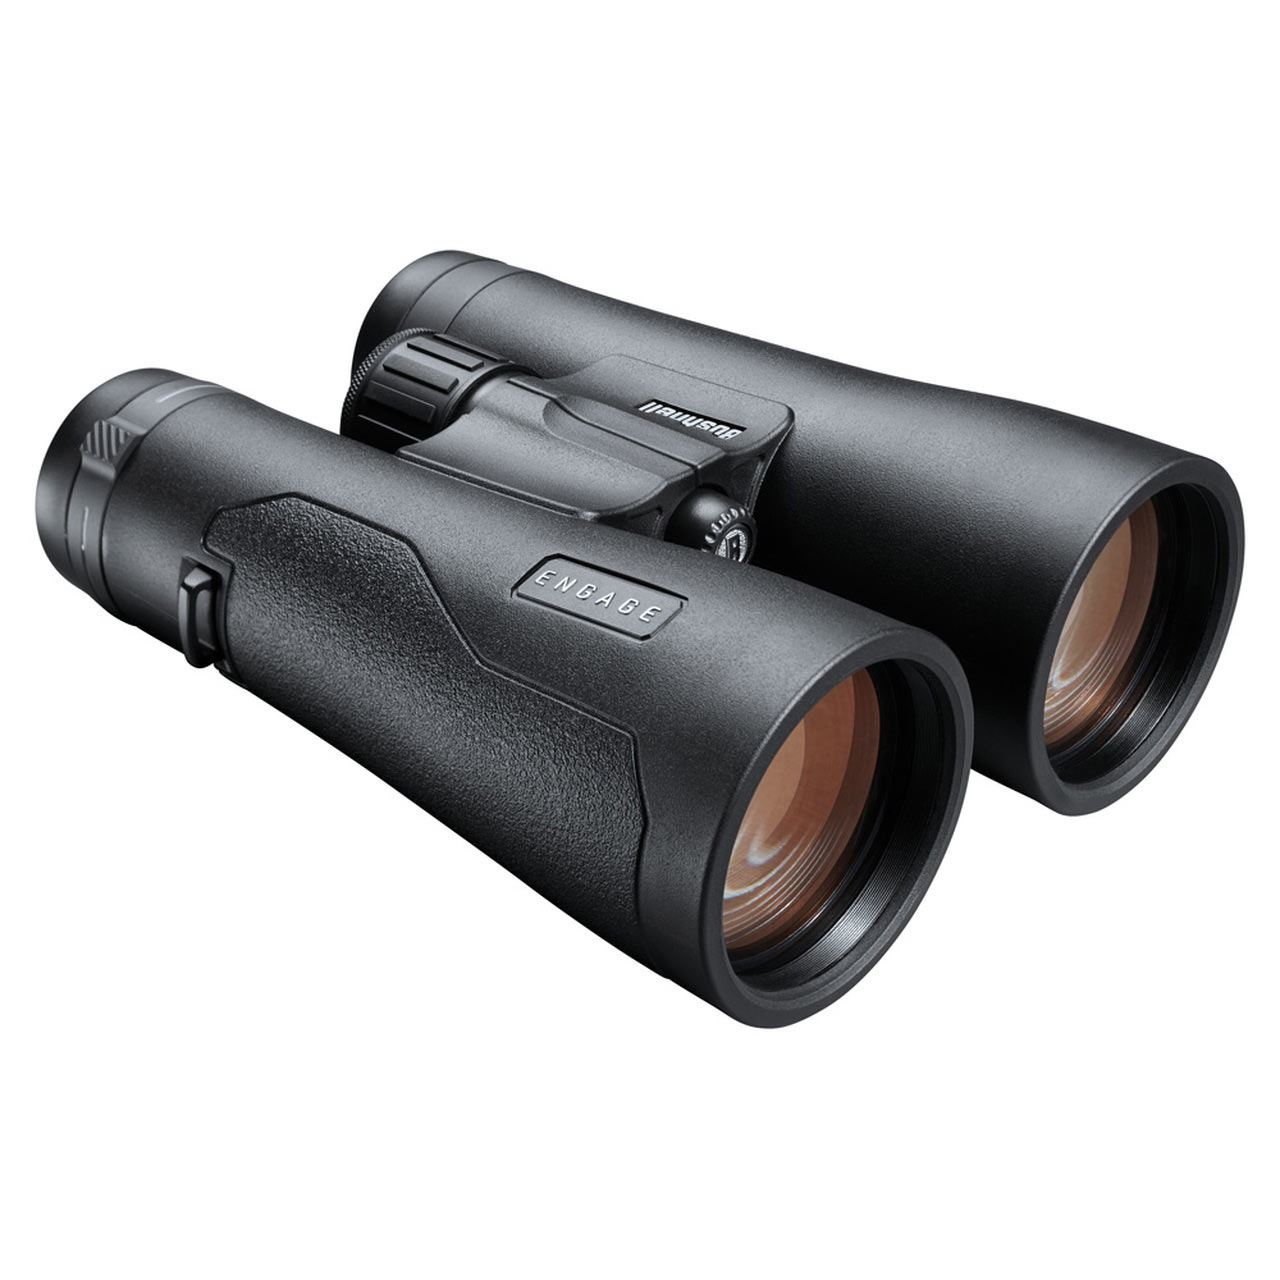 Image of Bushnell Engage 12x50 Binoculars